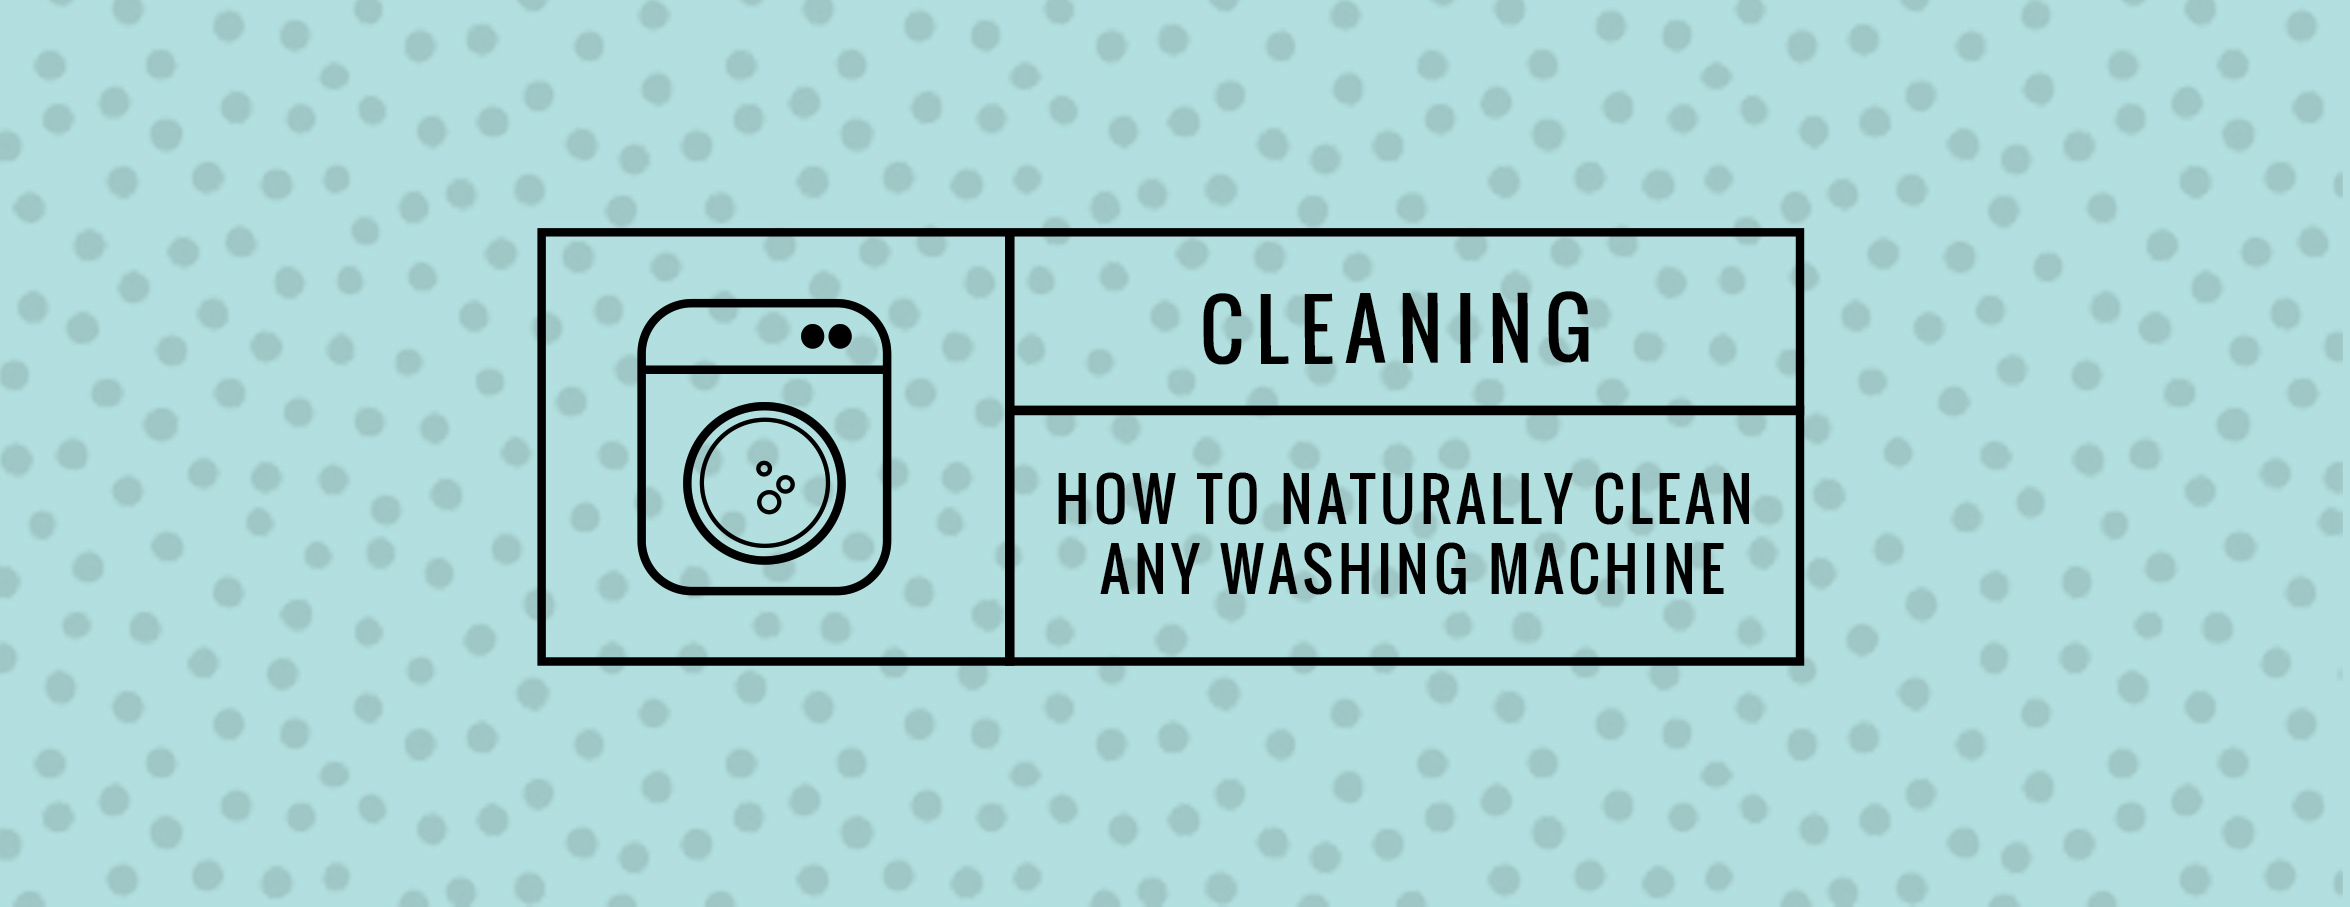 HOW TO CLEAN ANY WASHING MACHINE